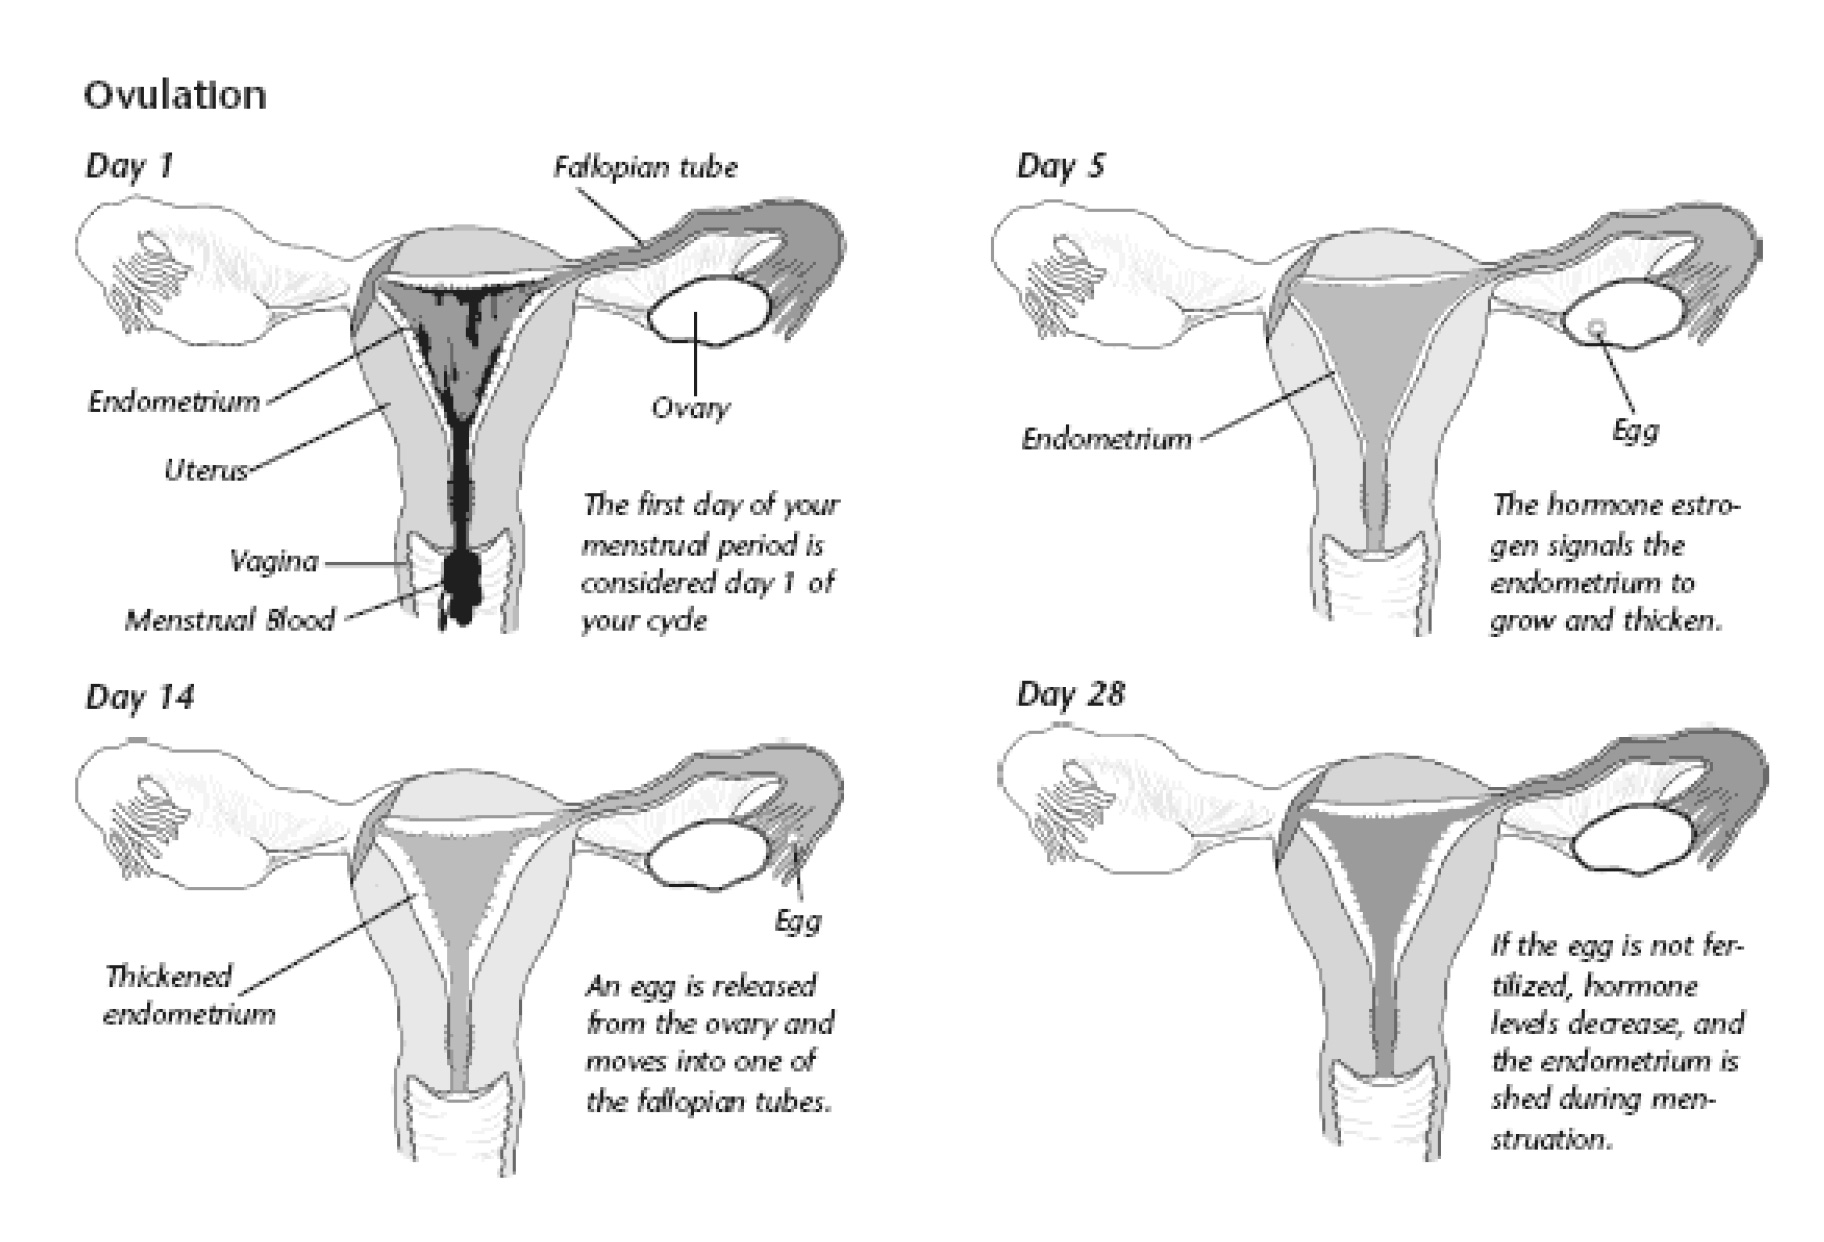 Menstrual cycle illustration